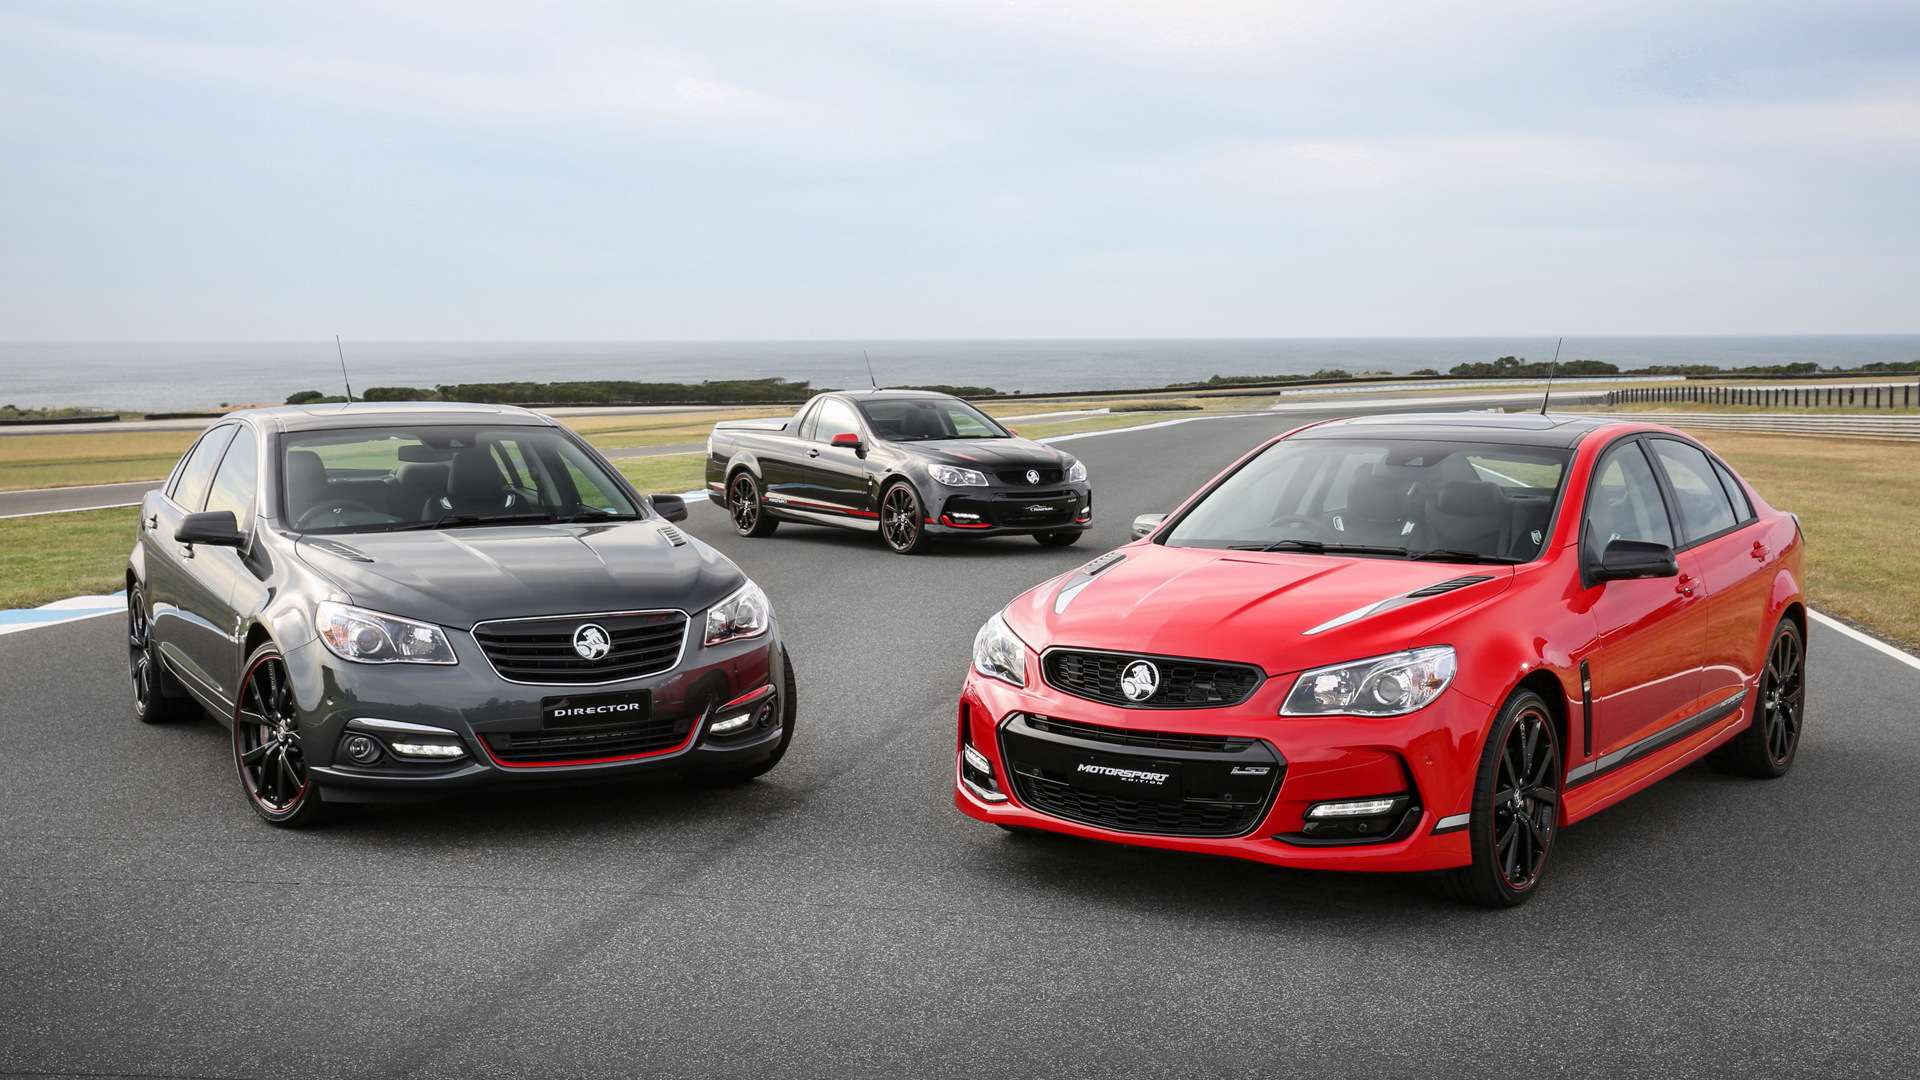 2017 Holden Commodore Motorsport, Director and Magnum special editions